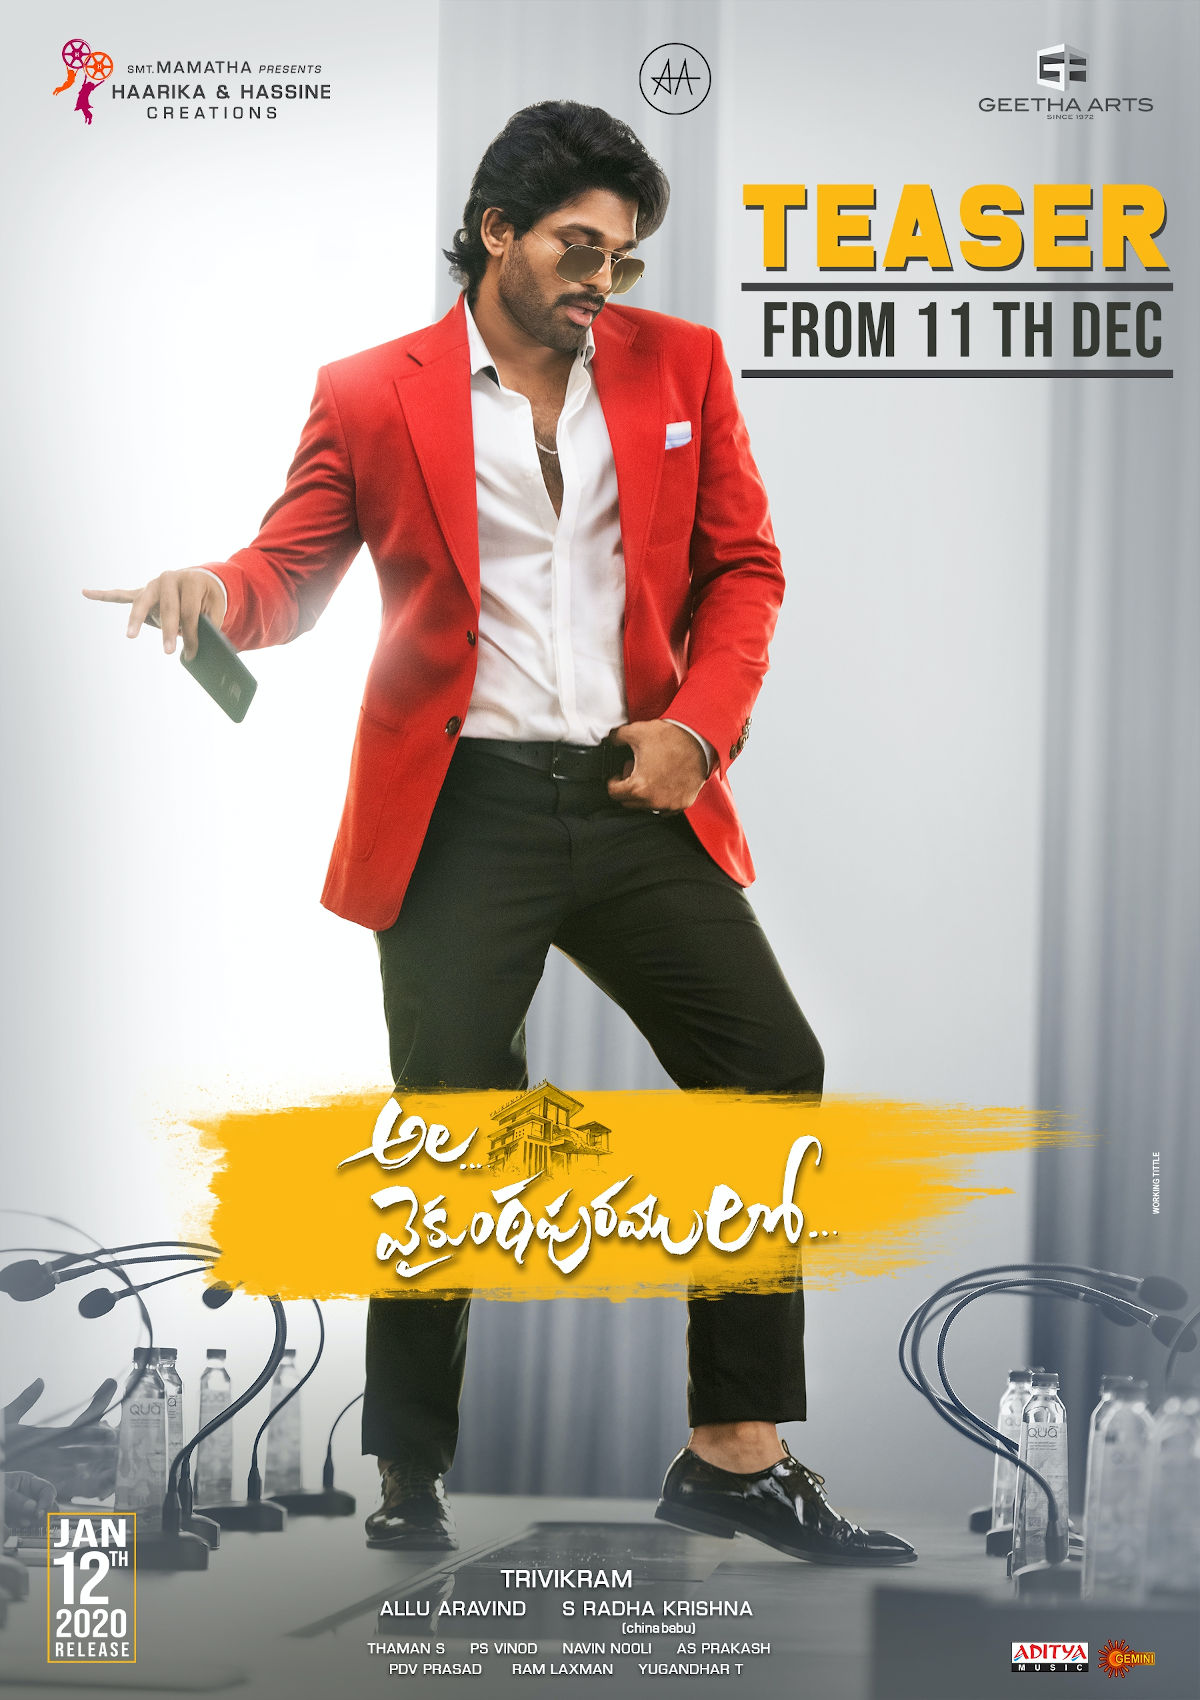 Allu Arjun Ala Vaikunthapurramloo Movie Teaser on December 11th